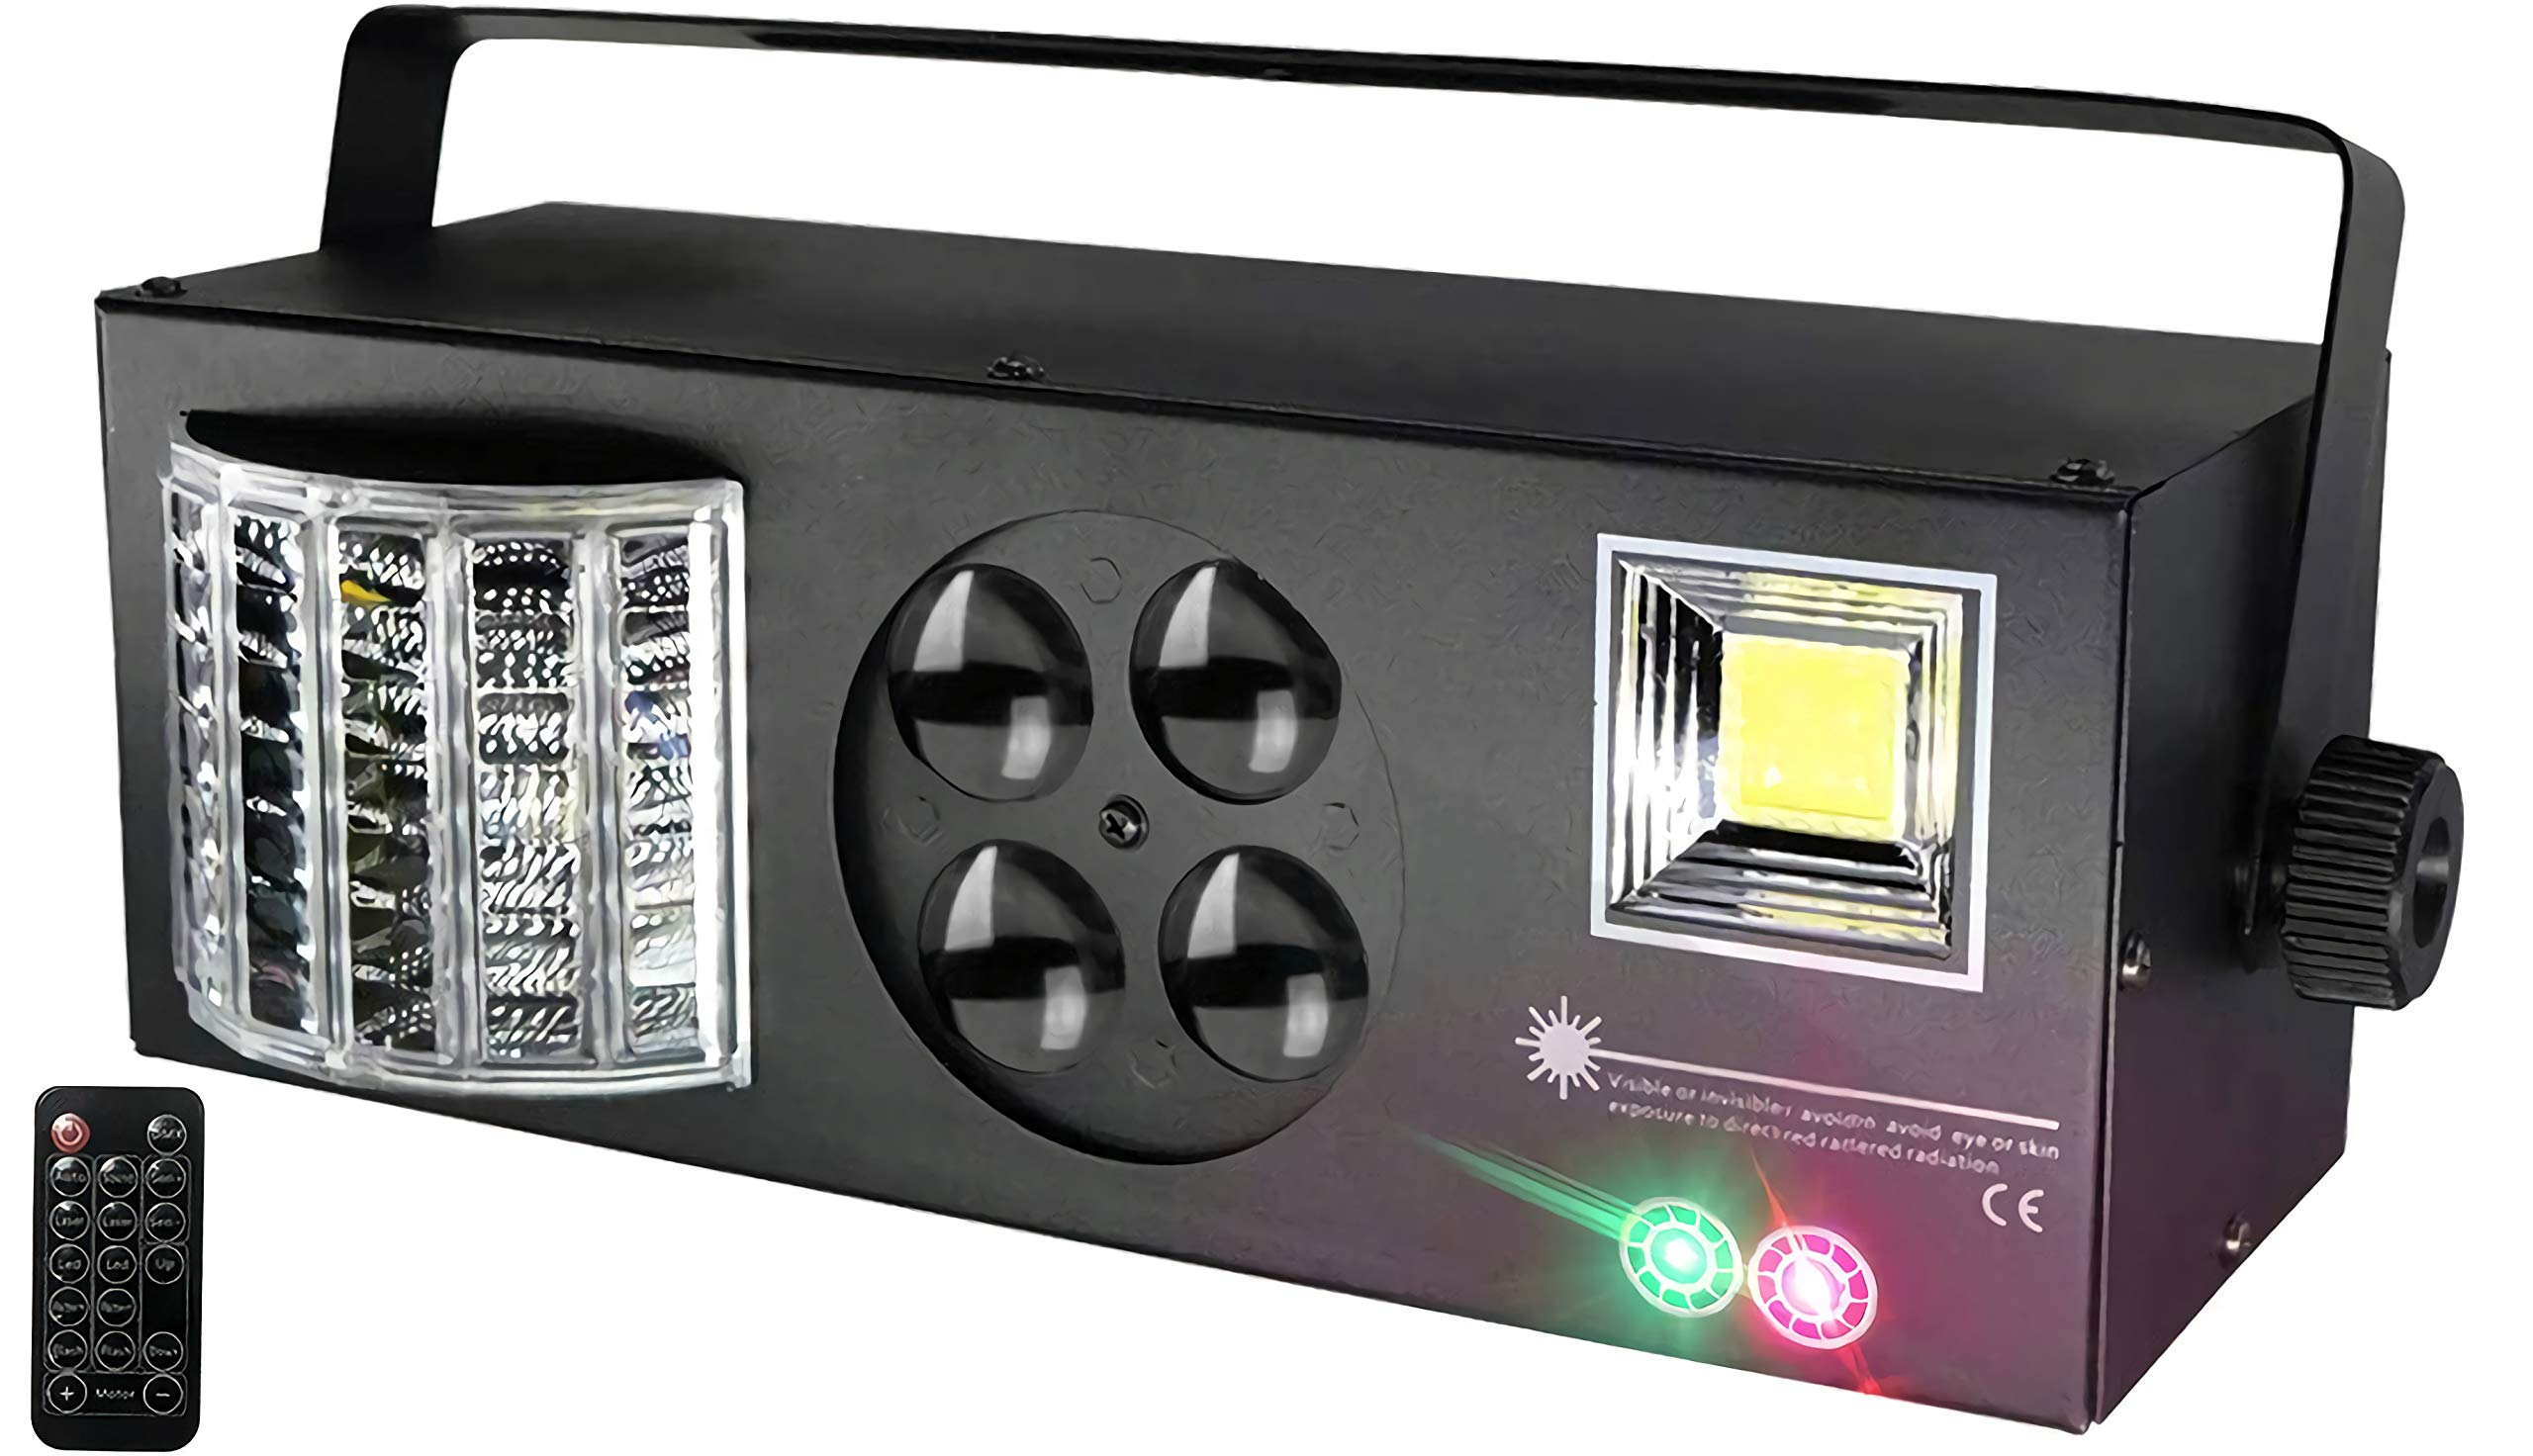 [2019 UPGRADED]4 in 1 Mixed Sound Effect Strobe RGBW LED Stage Lights with Remote and DMX Control for DJ Club Disco Party KTV Xmas(Black) by TRAELY